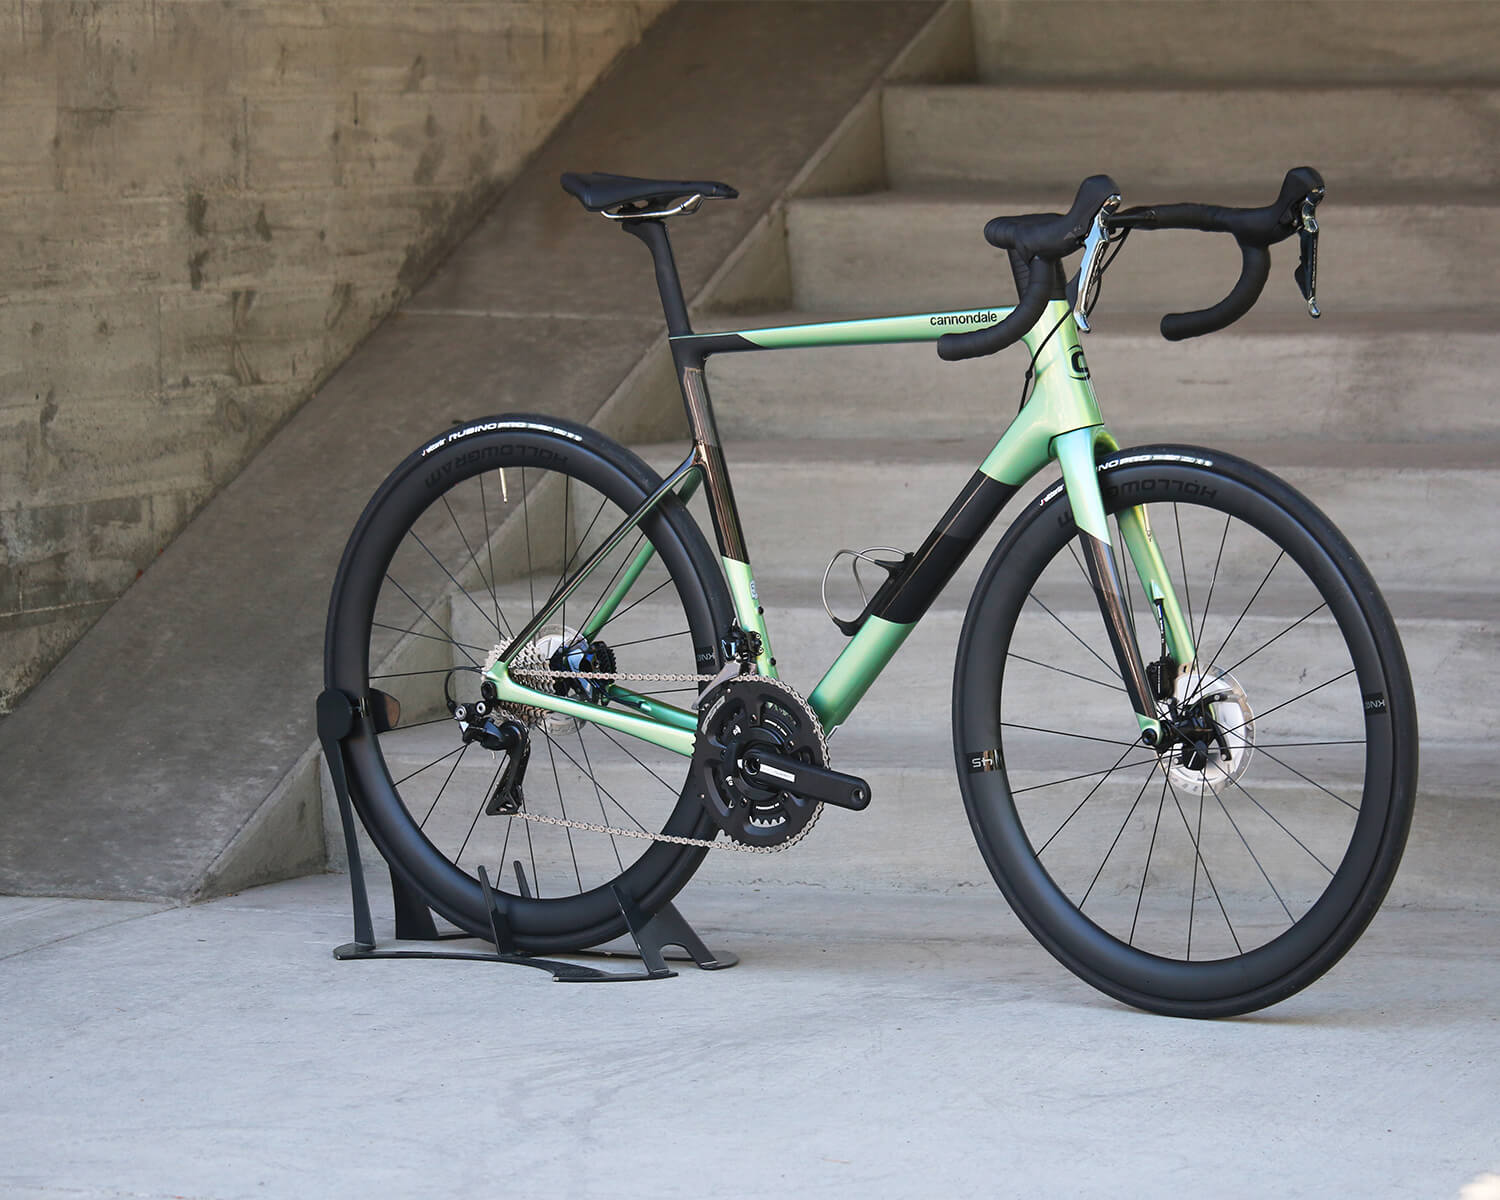 2020 Cannondale SuperSix EVO Side Profile - Contender Bicycles